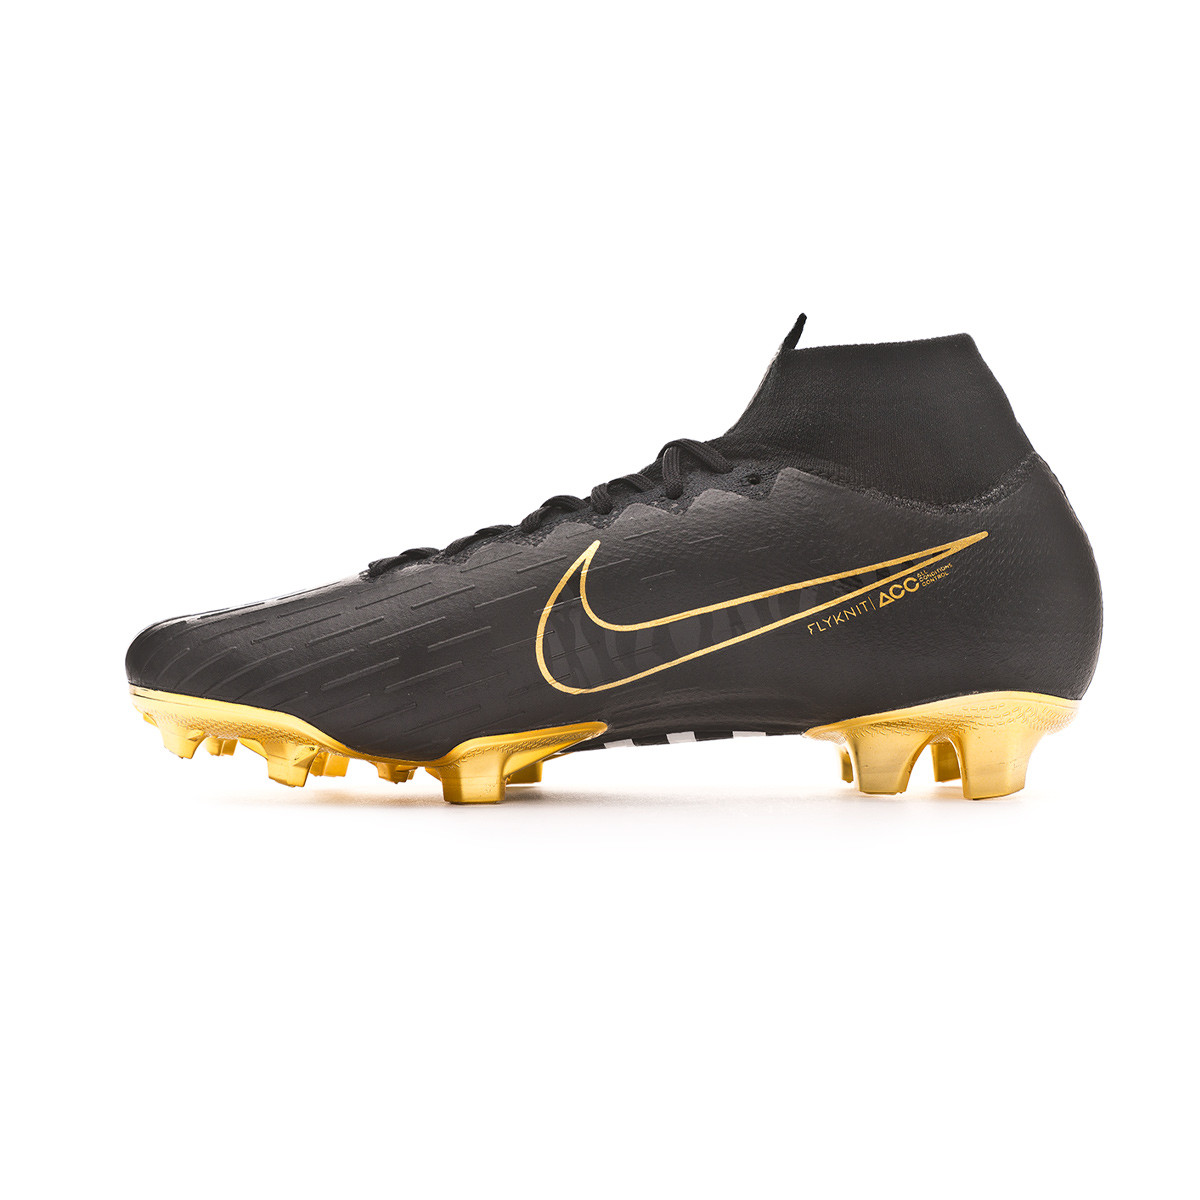 buy online 1ad34 34fc1 Bota Mercurial Superfly VI Elite CR7 Special Edition FG Black-Metallic  vivid gold